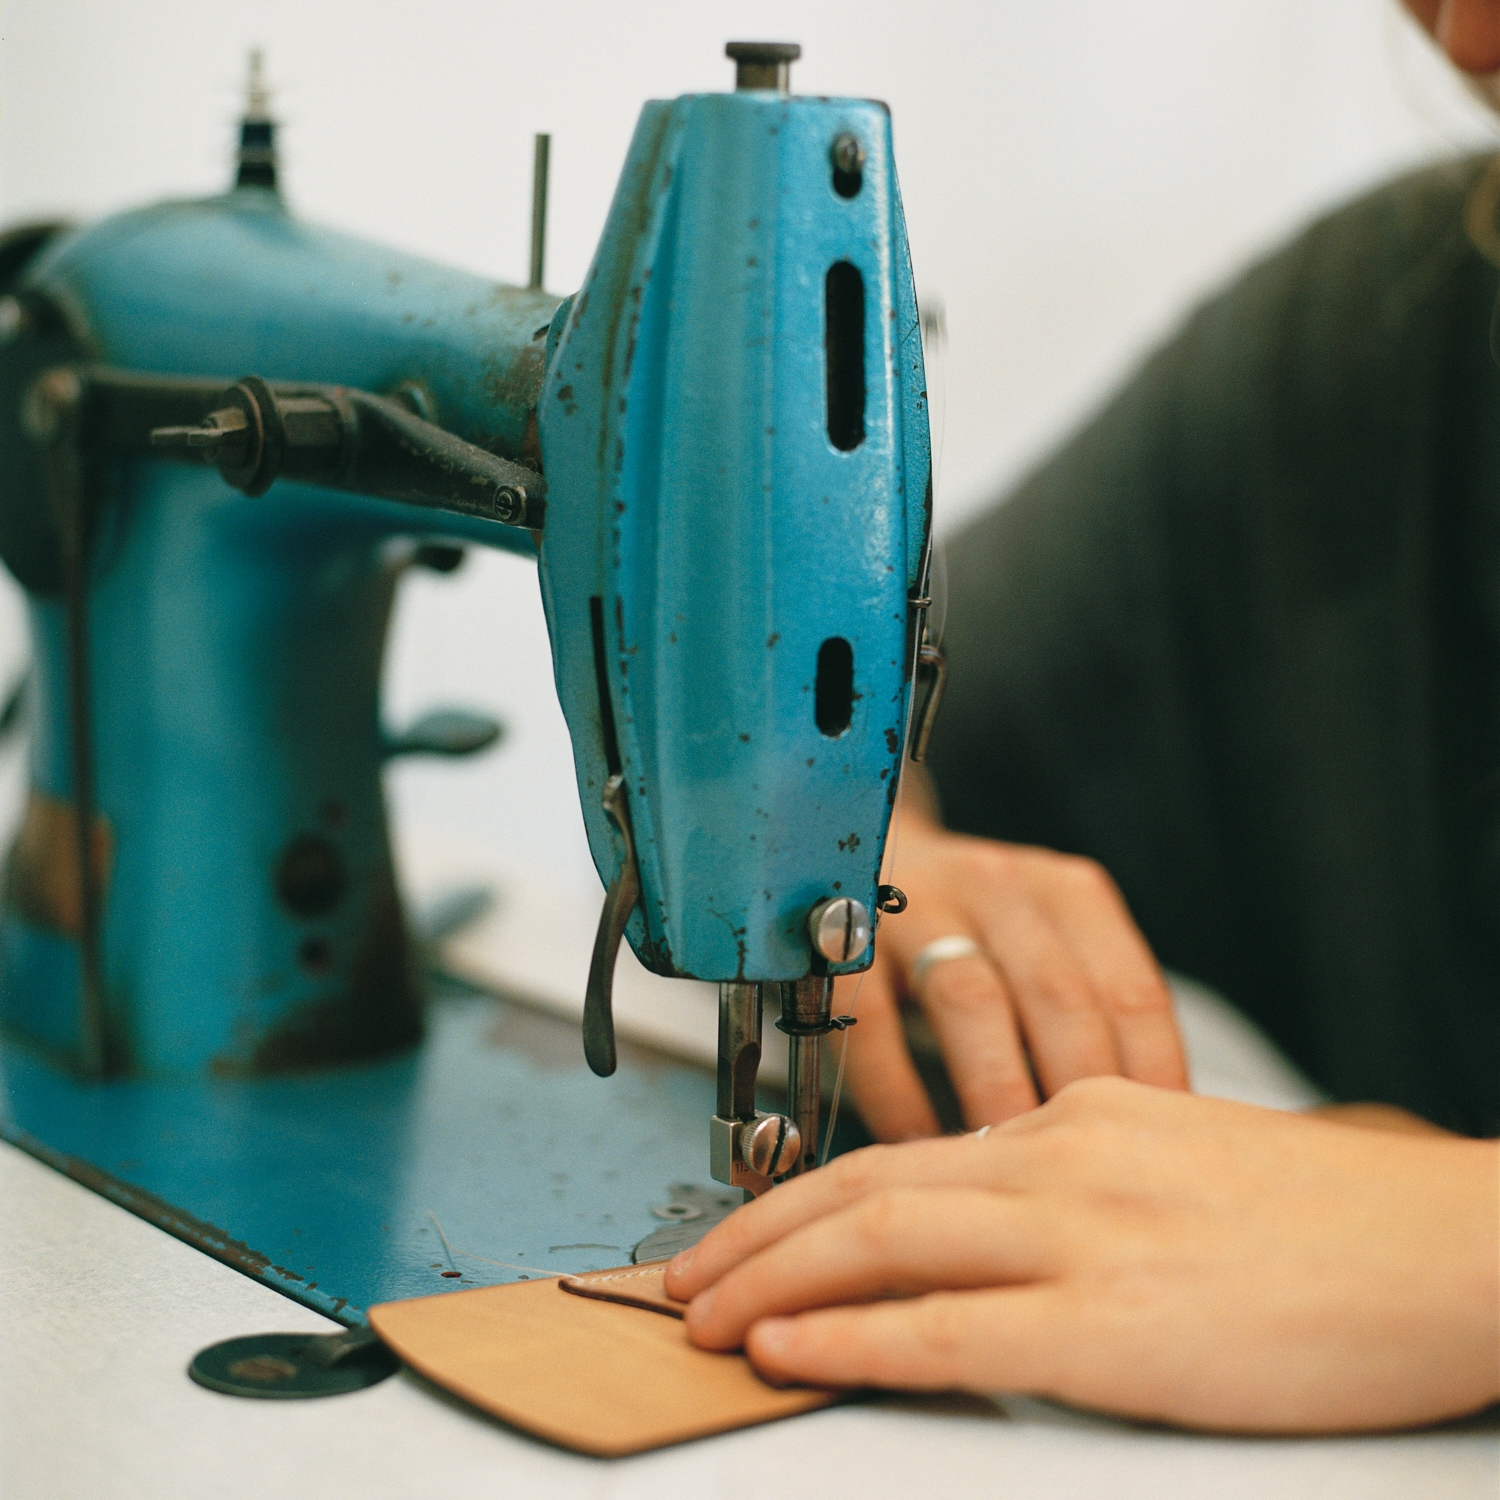 3. Using our 1930s Singer flatbed the card holder, neck loop and sides are carefully stitched together